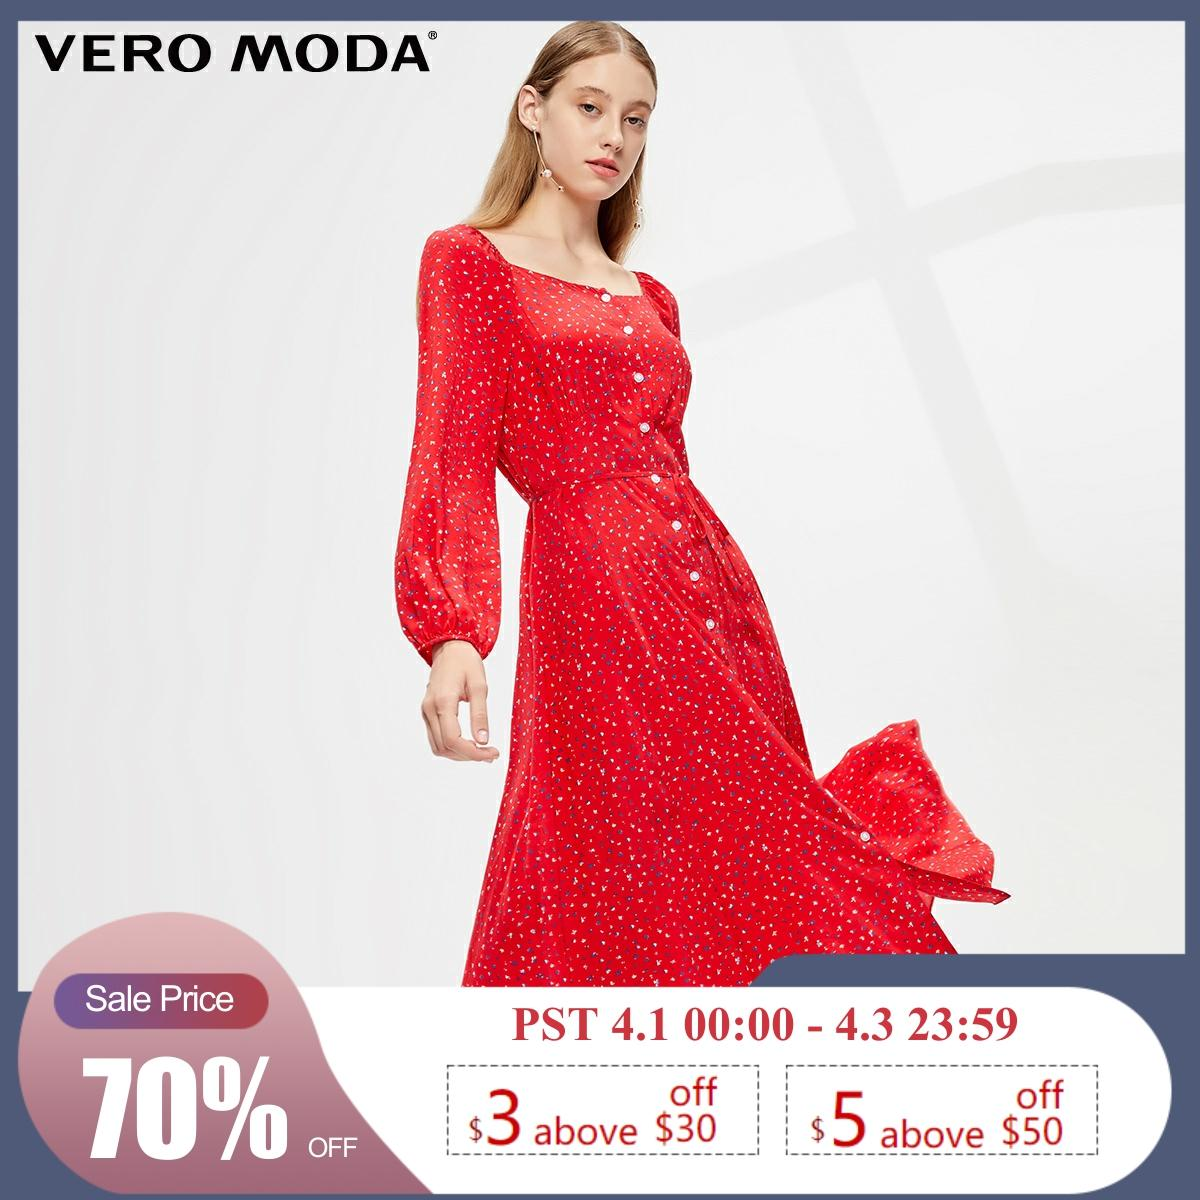 Vero Moda New Floral Royal Sleeves French Style Square-cut Collar Dress | 31937D517